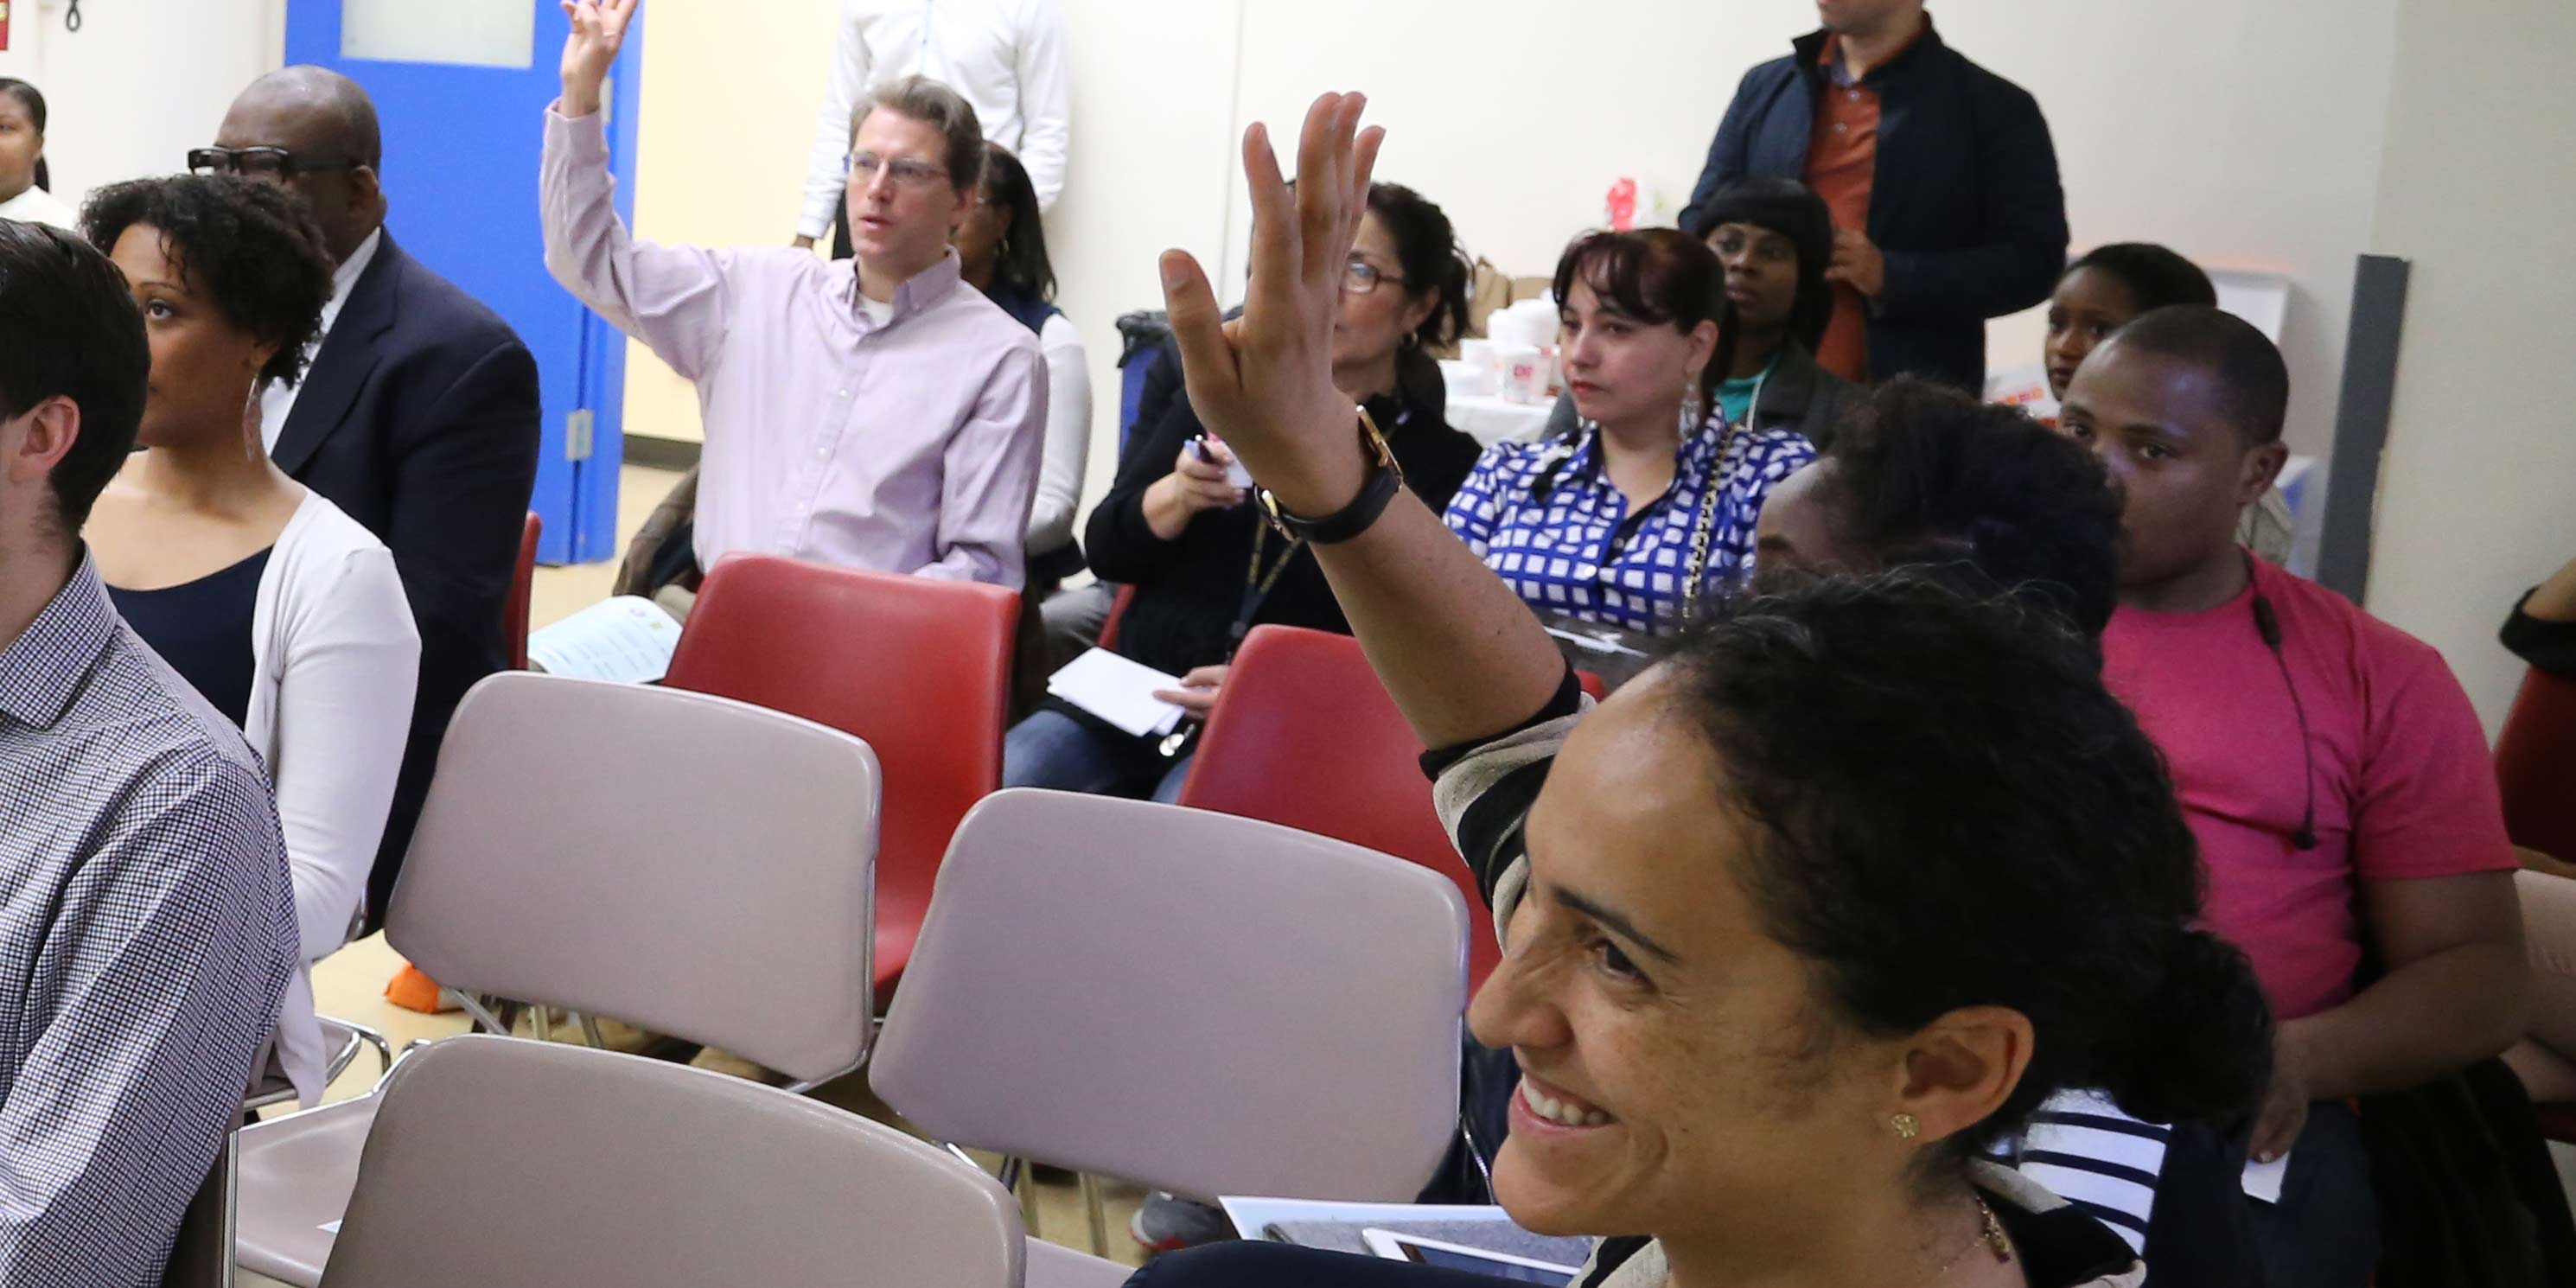 people raise hands at workshop